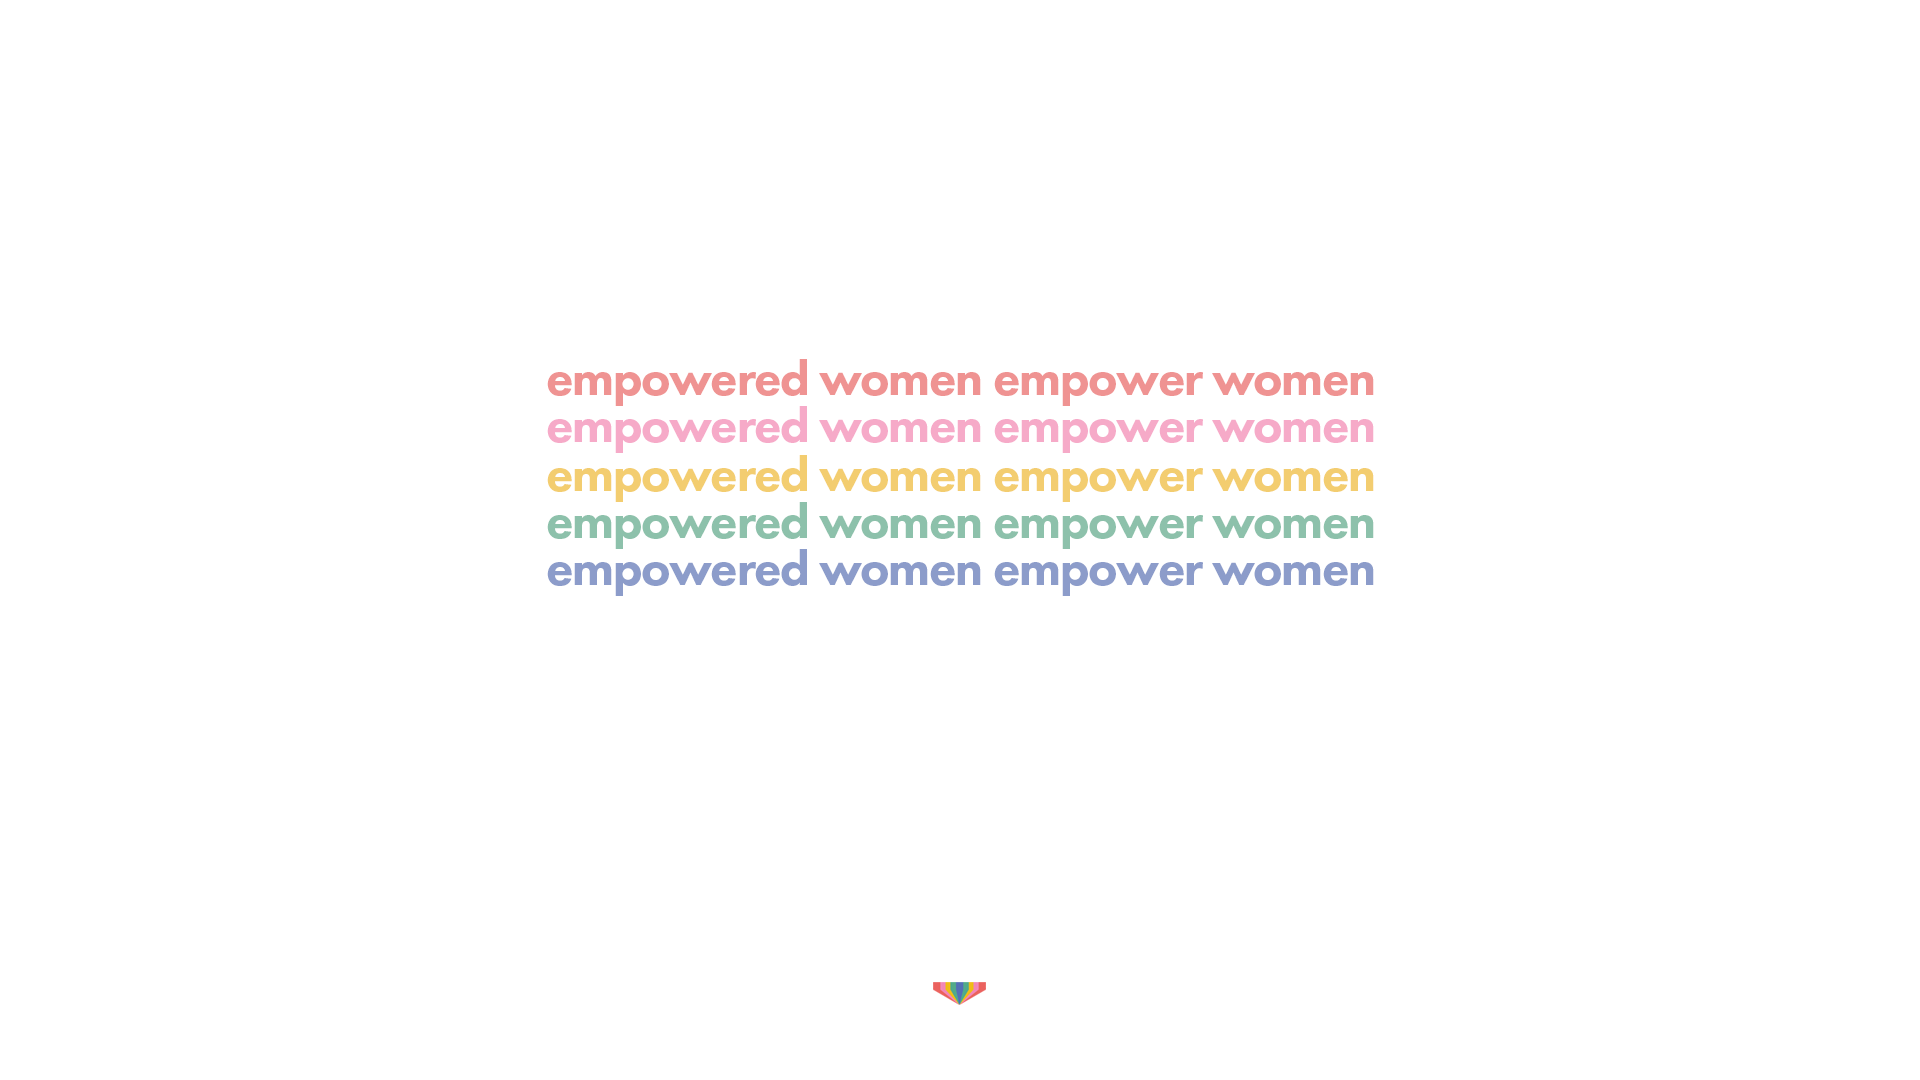 empower_1.png